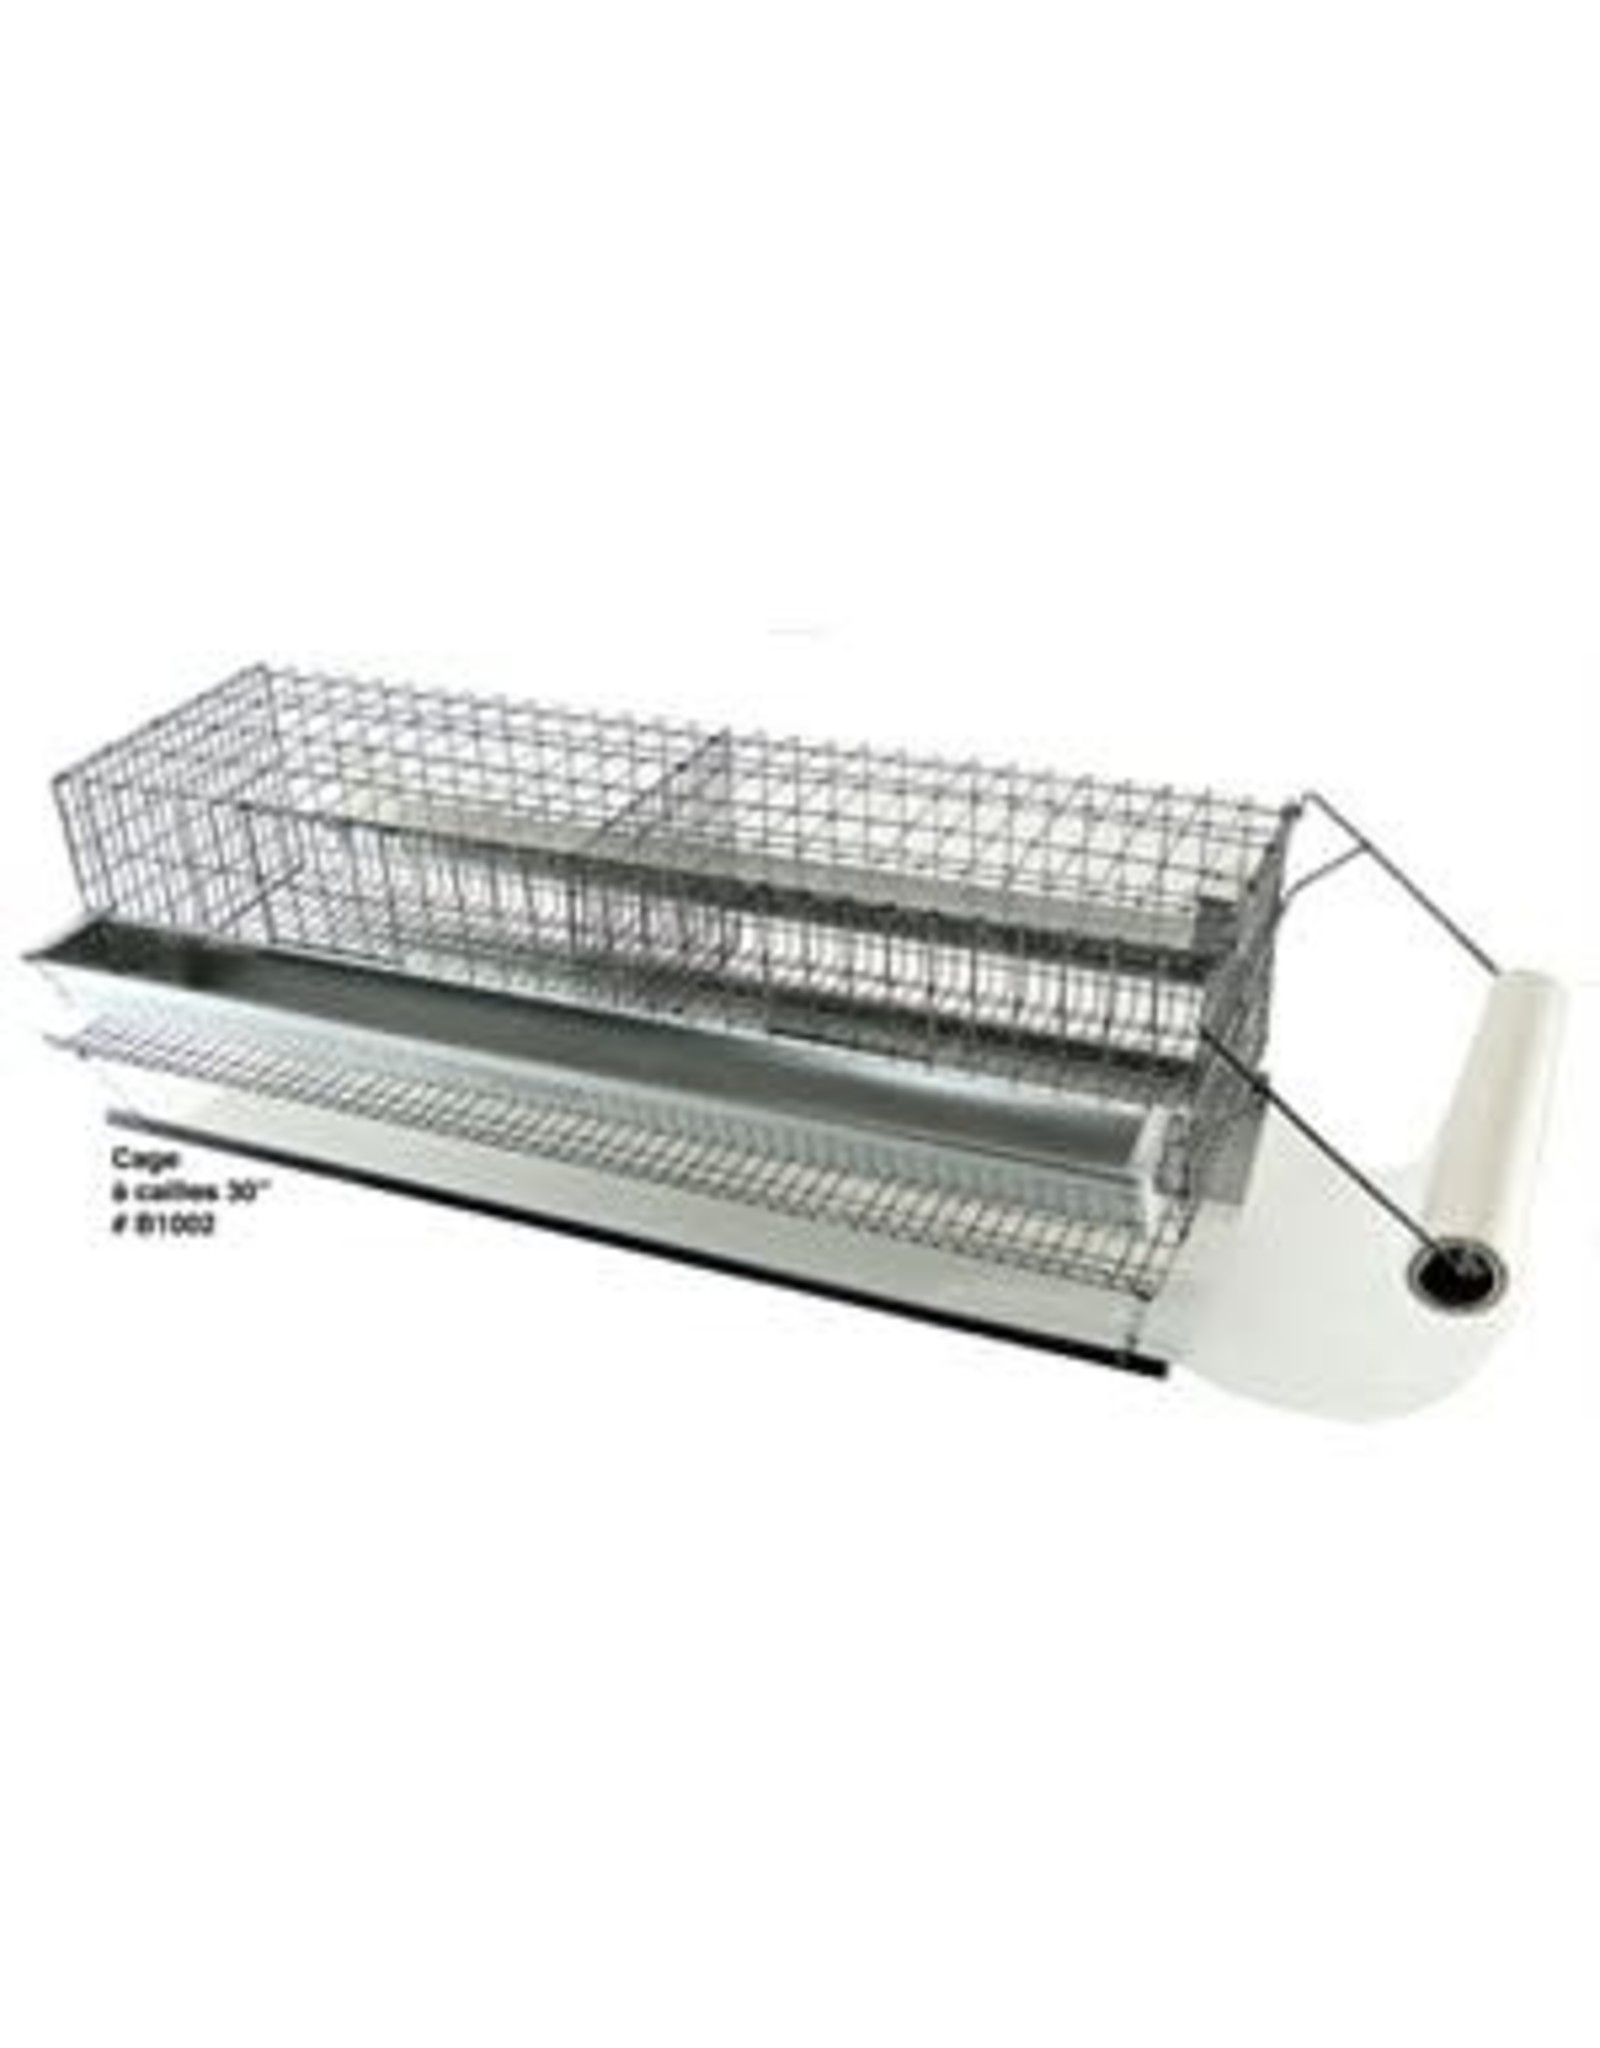 Ranch cunicole 2 cages a cailles 15 X 9